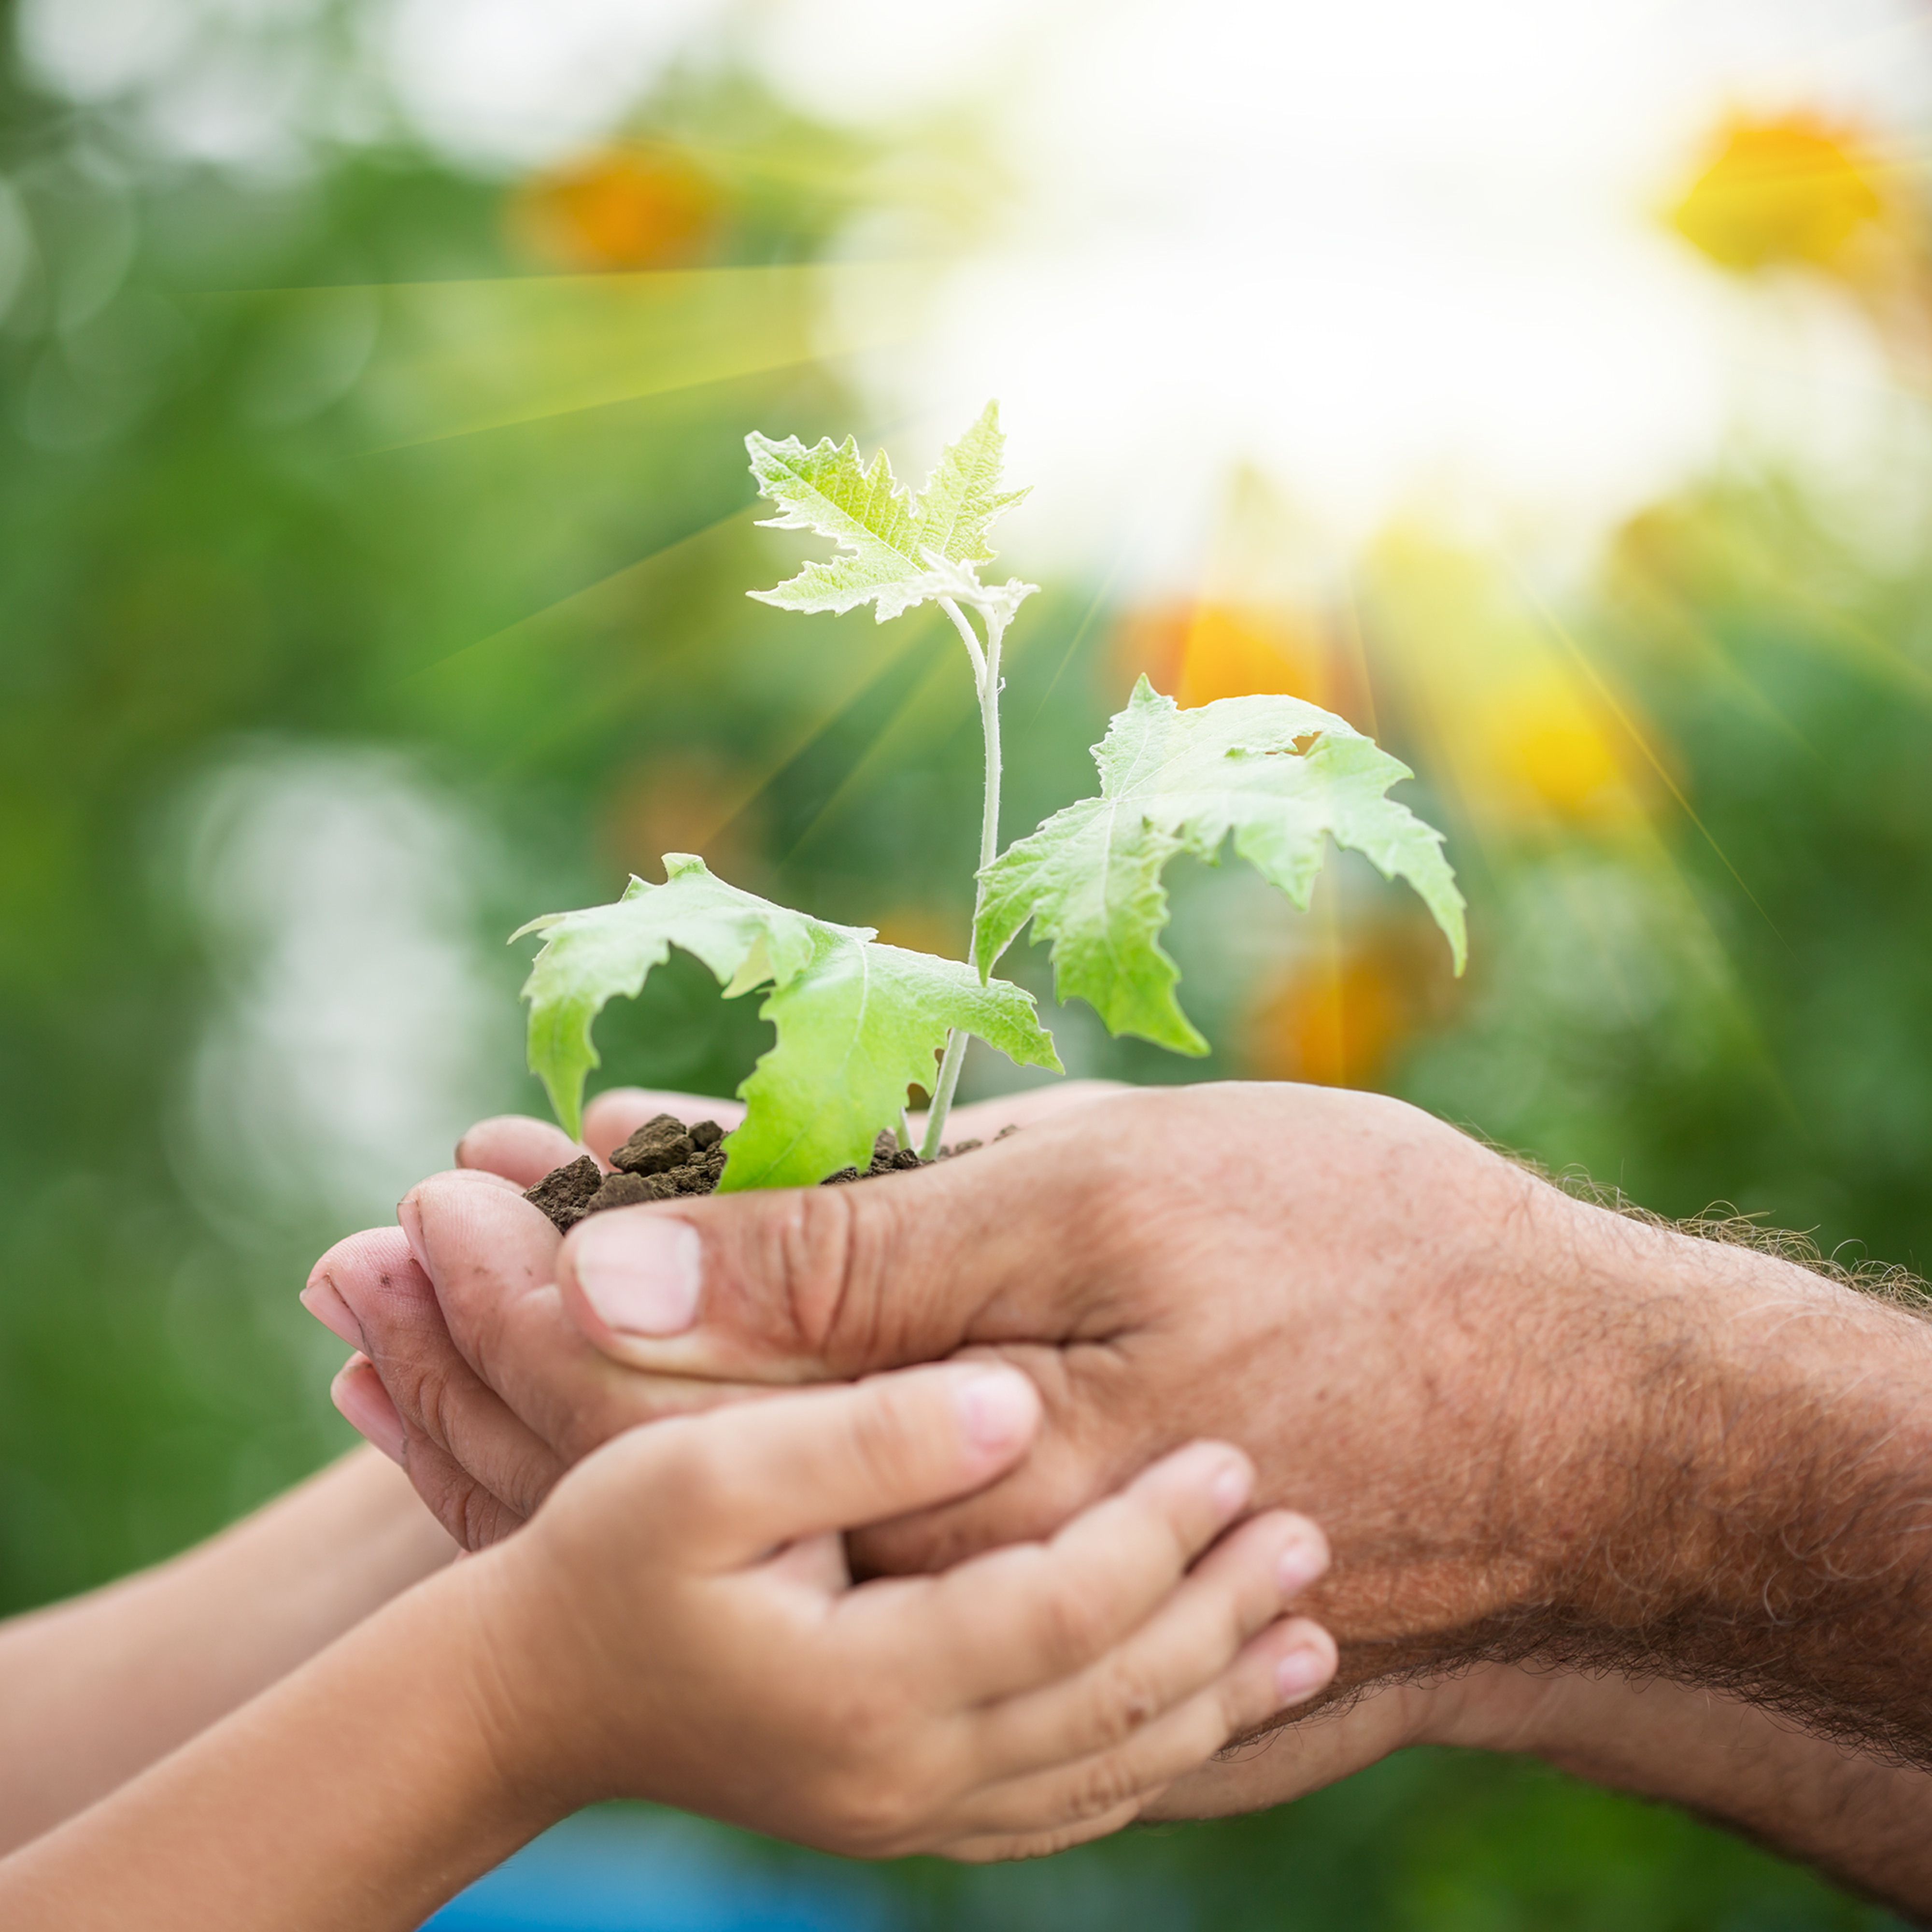 A child holding a man's cupped hands holding a plant.